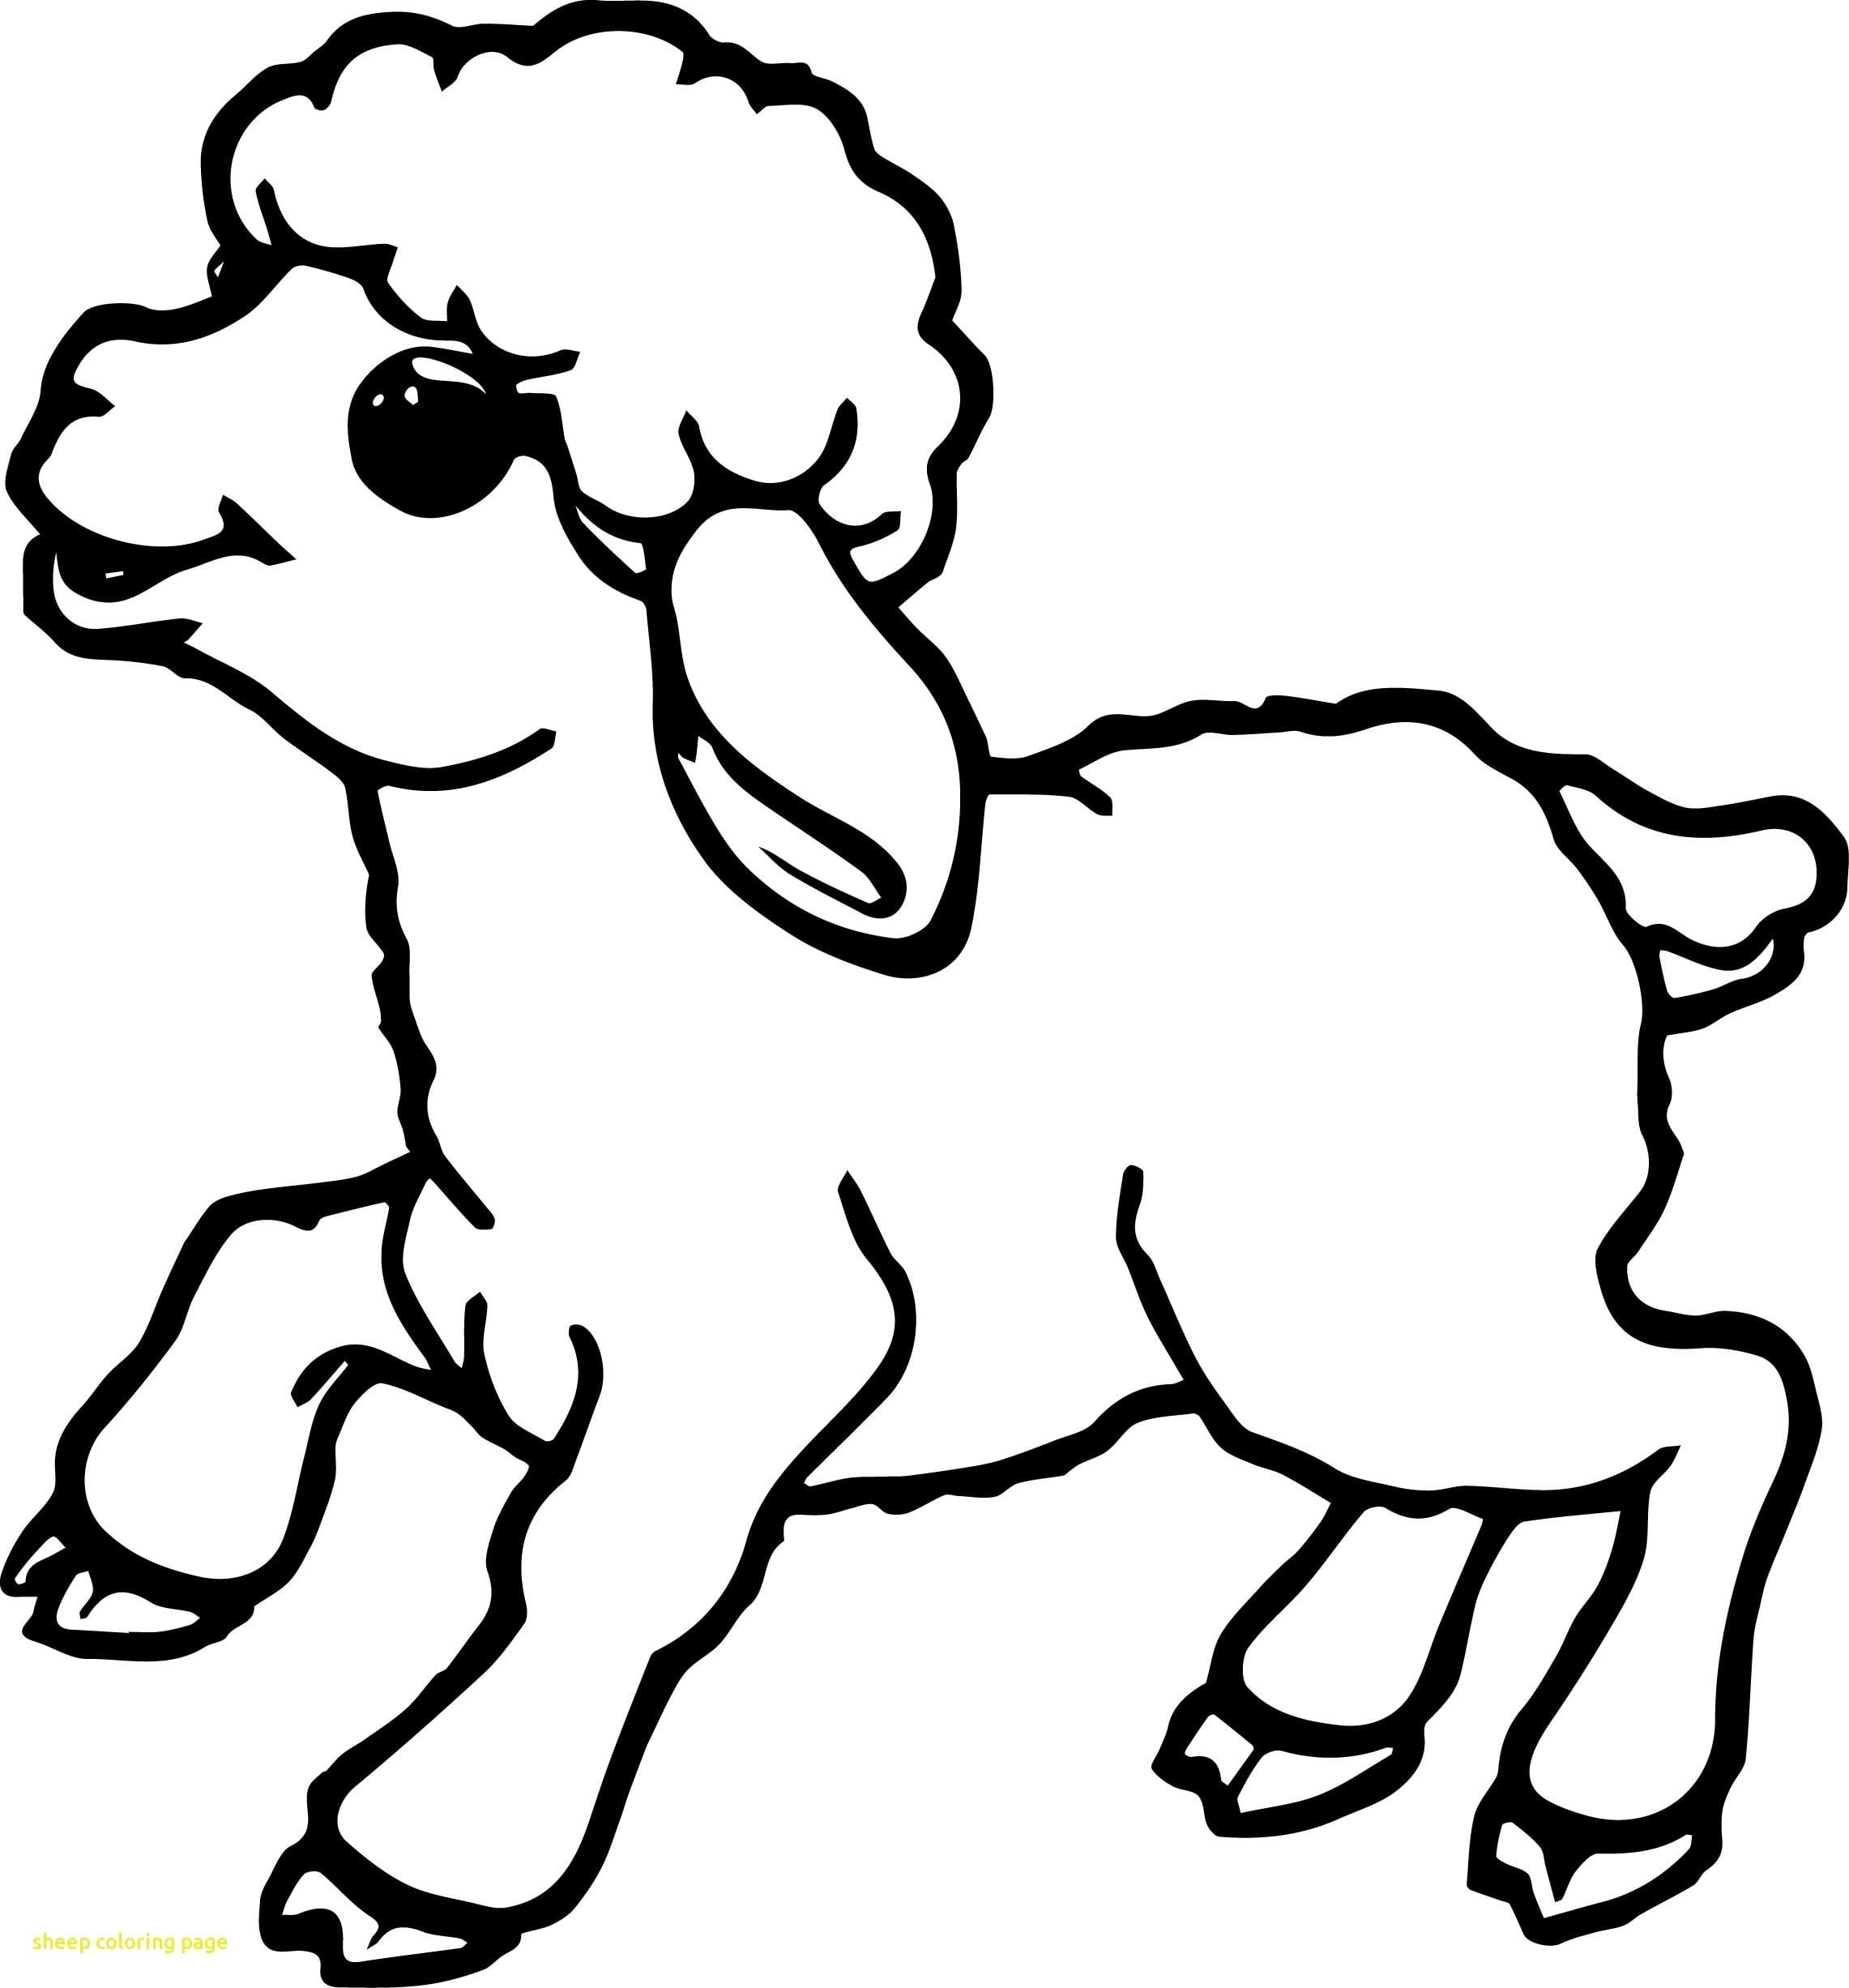 Sheep Coloring Page Unique Sheep Coloring Page With 30 Sheep Coloring Page Coloring Page Free Animal Coloring Pages Sheep Drawing Coloring Pages